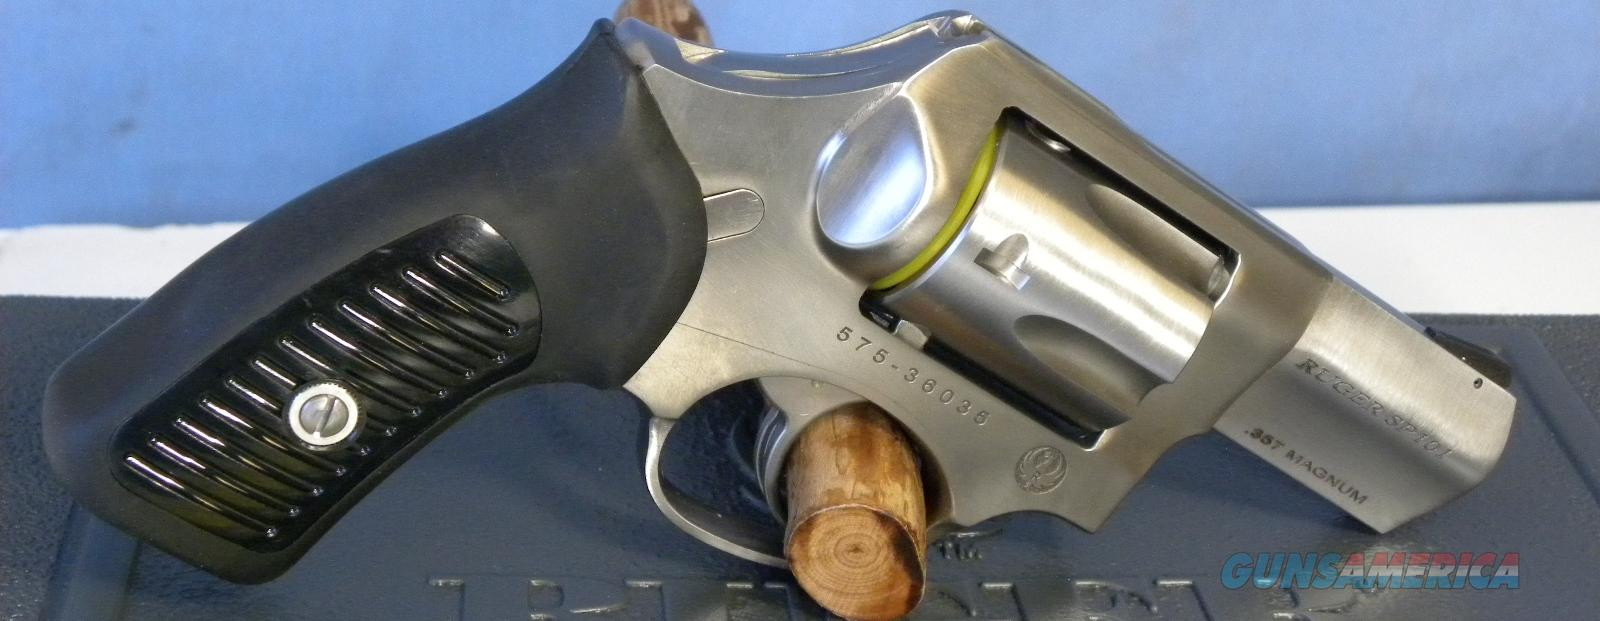 Ruger SP101 .357 Mag SS Bobbed Hammer 5720  Guns > Pistols > Ruger Double Action Revolver > SP101 Type